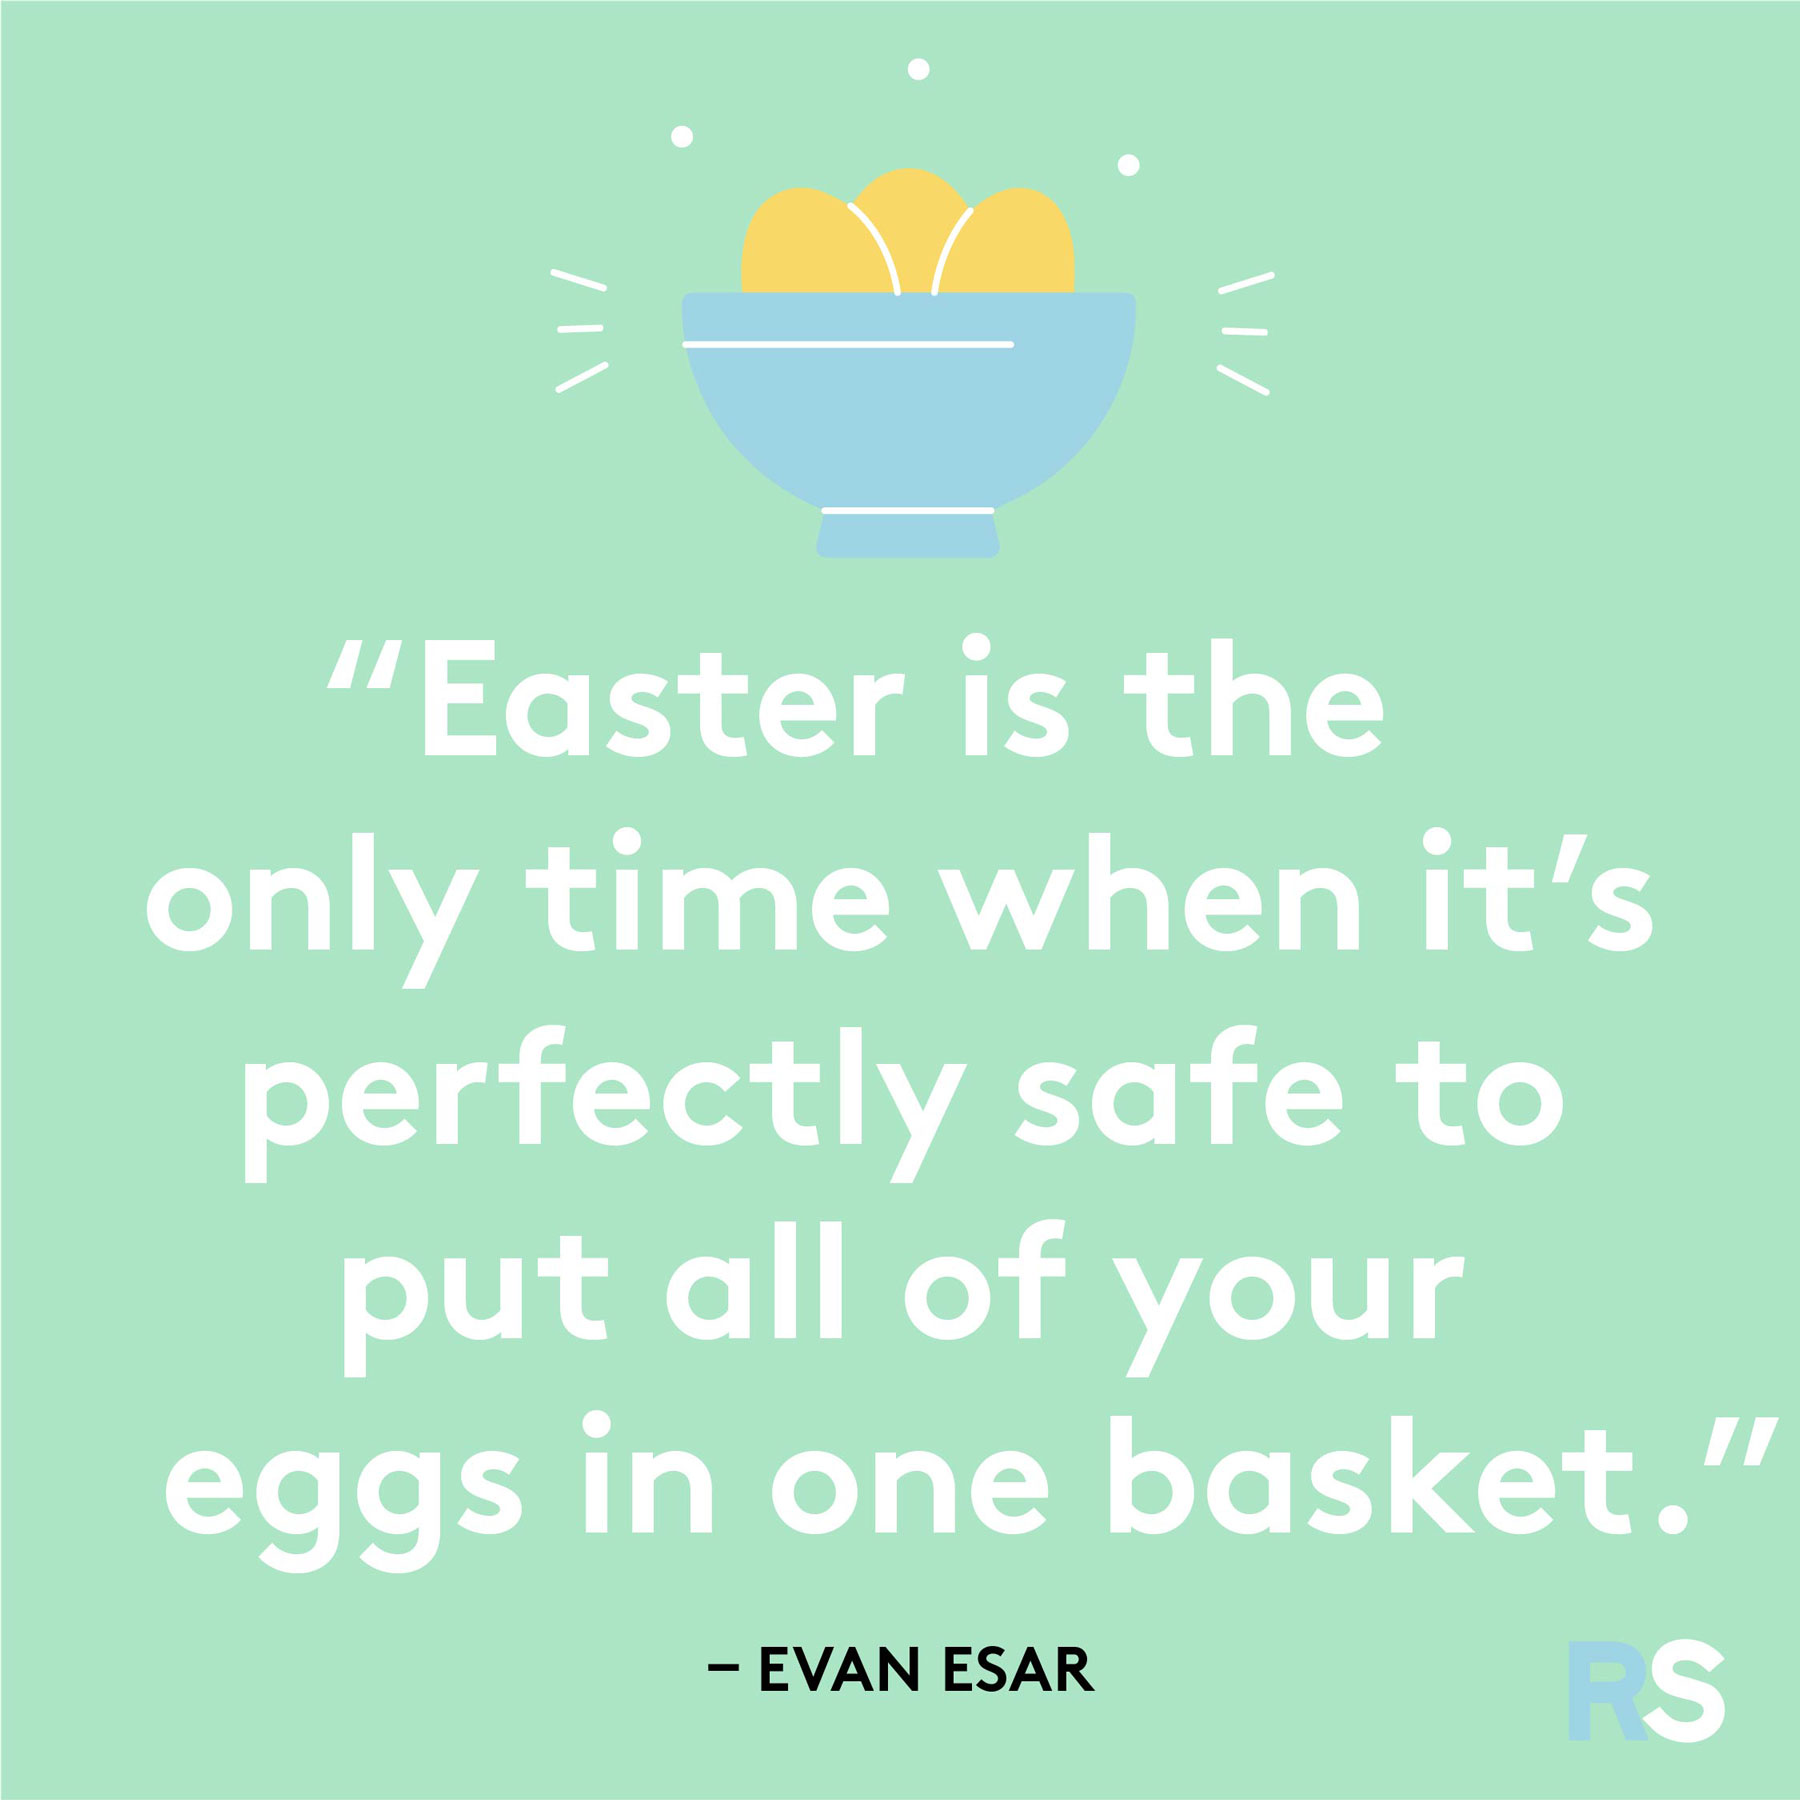 Easter quotes, captions, and messages - Evan Esar quote